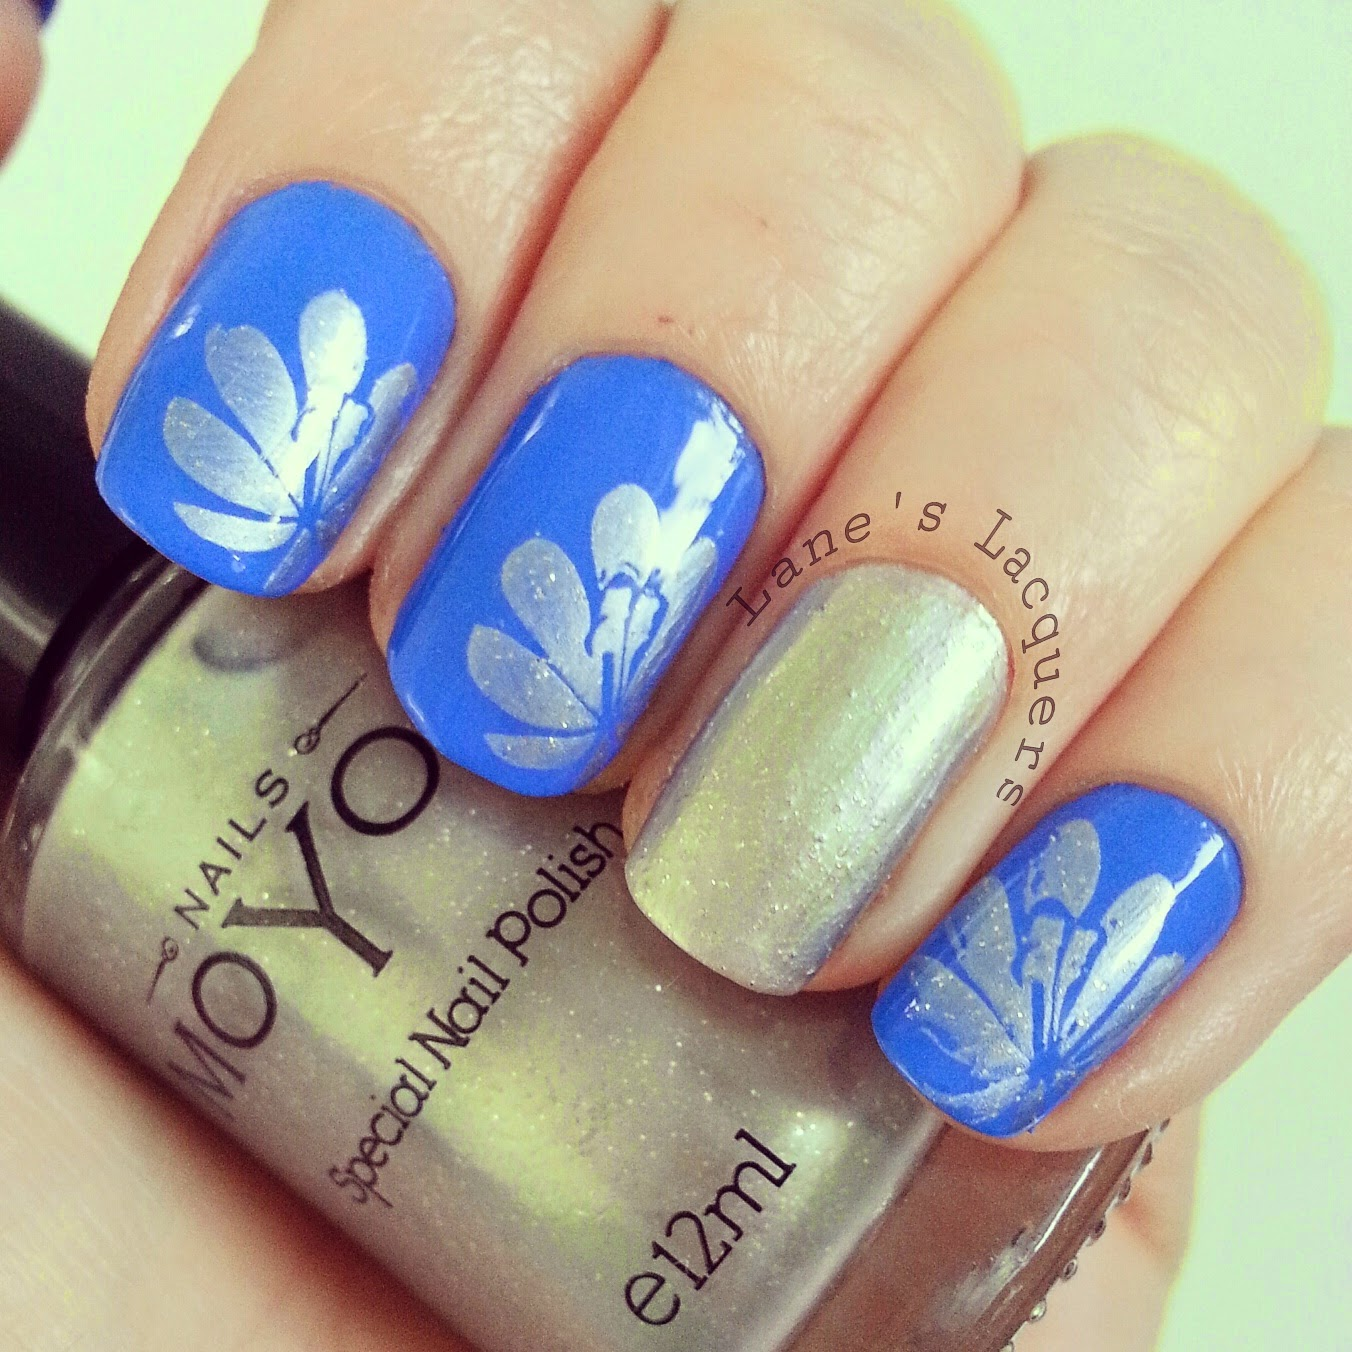 floral-nail-art-moyou-nails-107-review